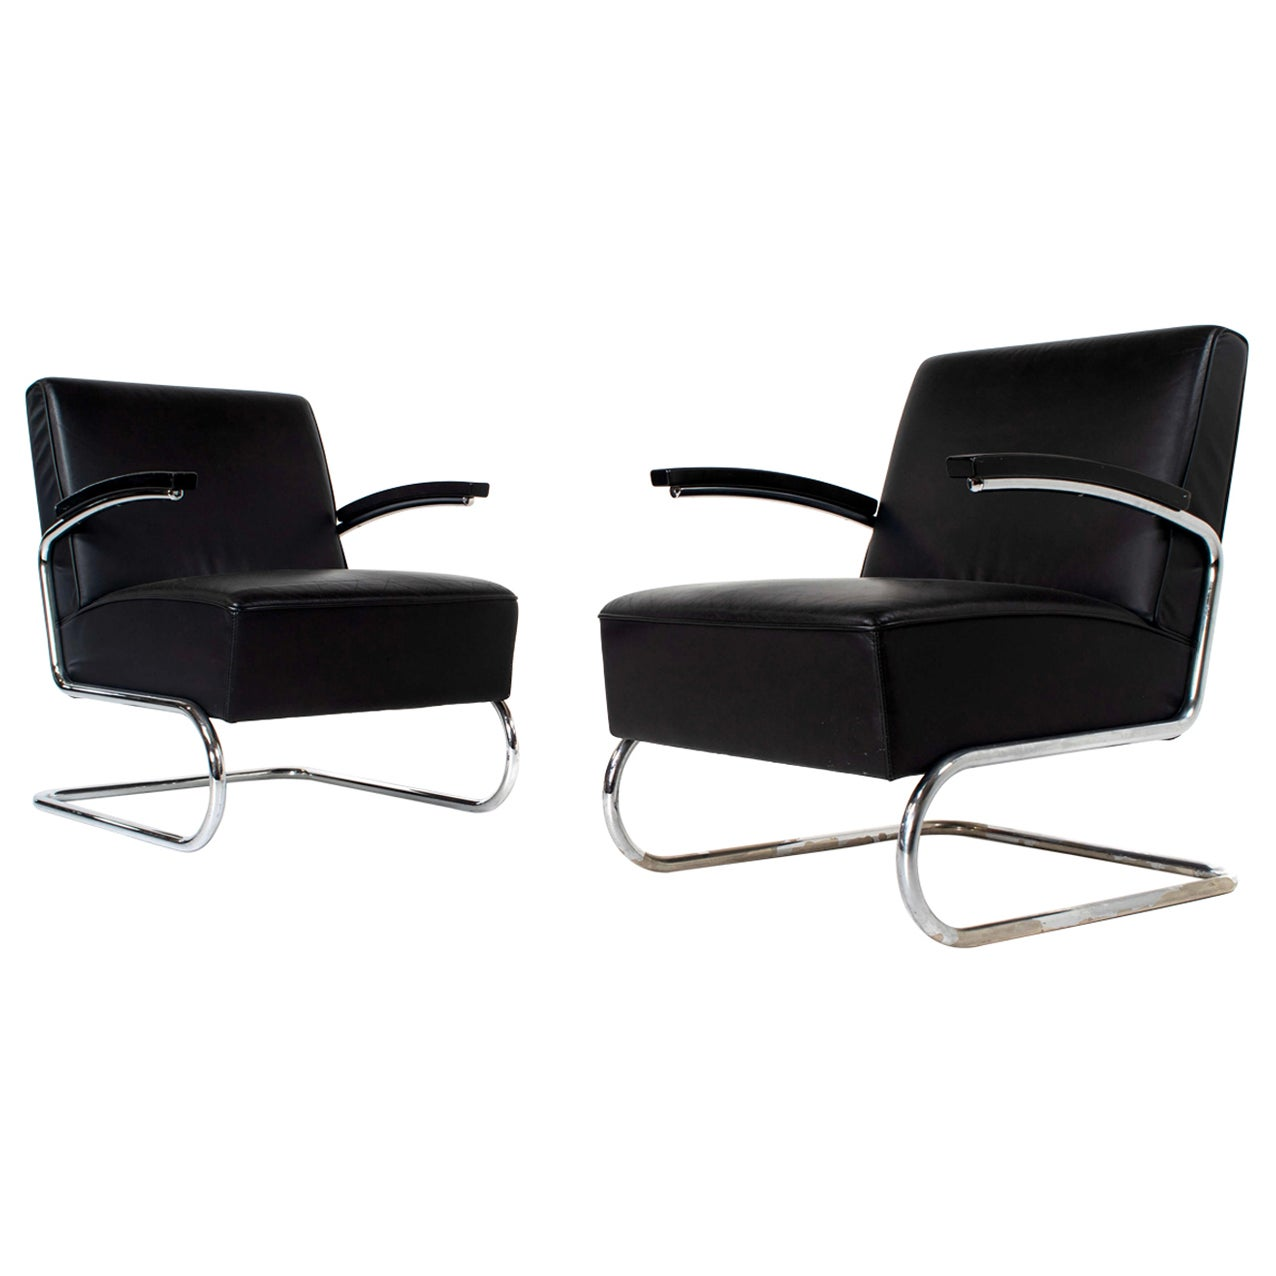 Set of Vintage Thonet Leather Lounge Chairs Model S411